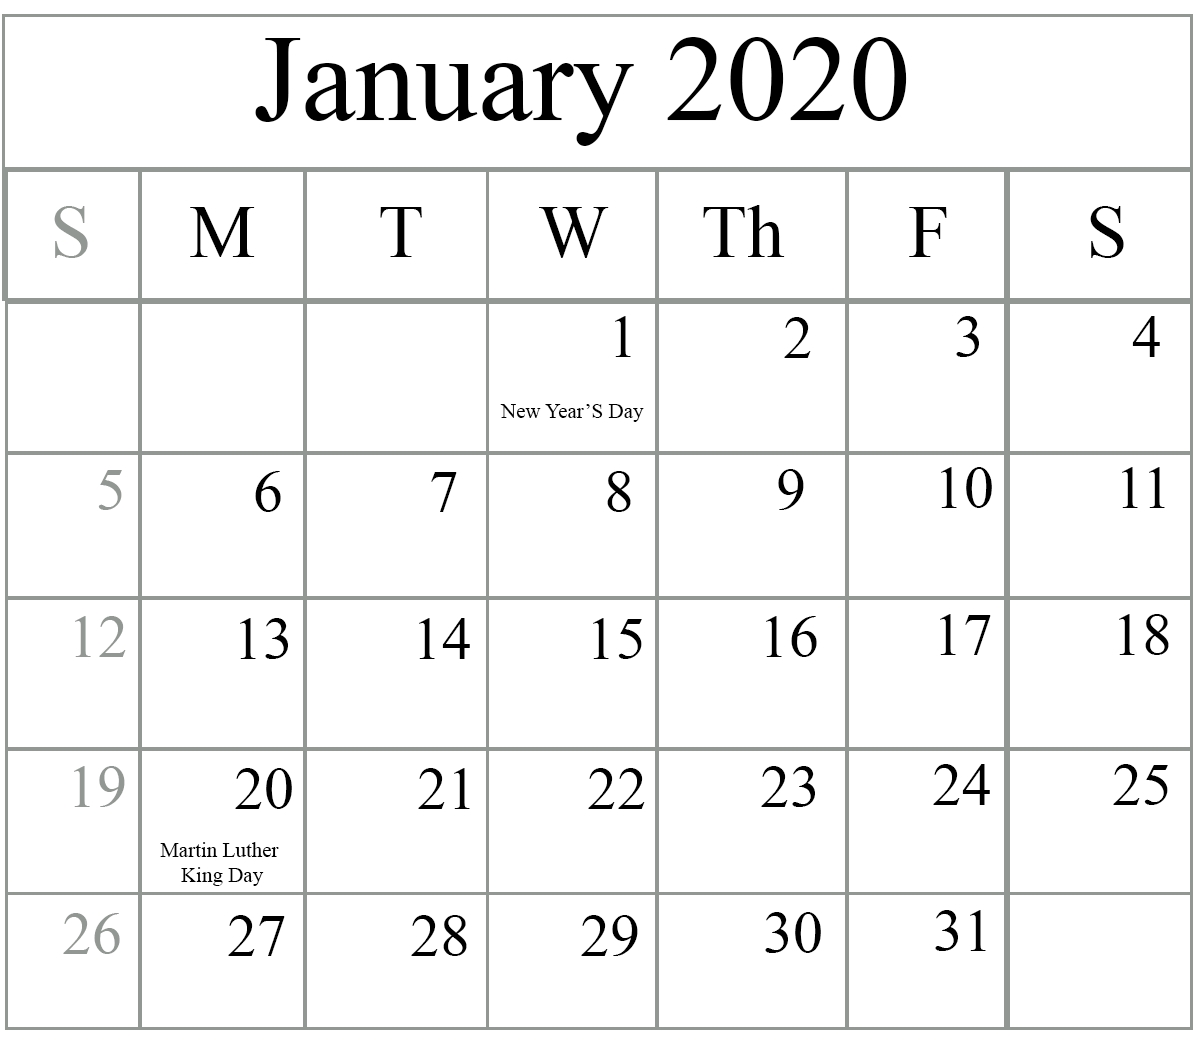 January February Printable Calendar 2020 With Holidays